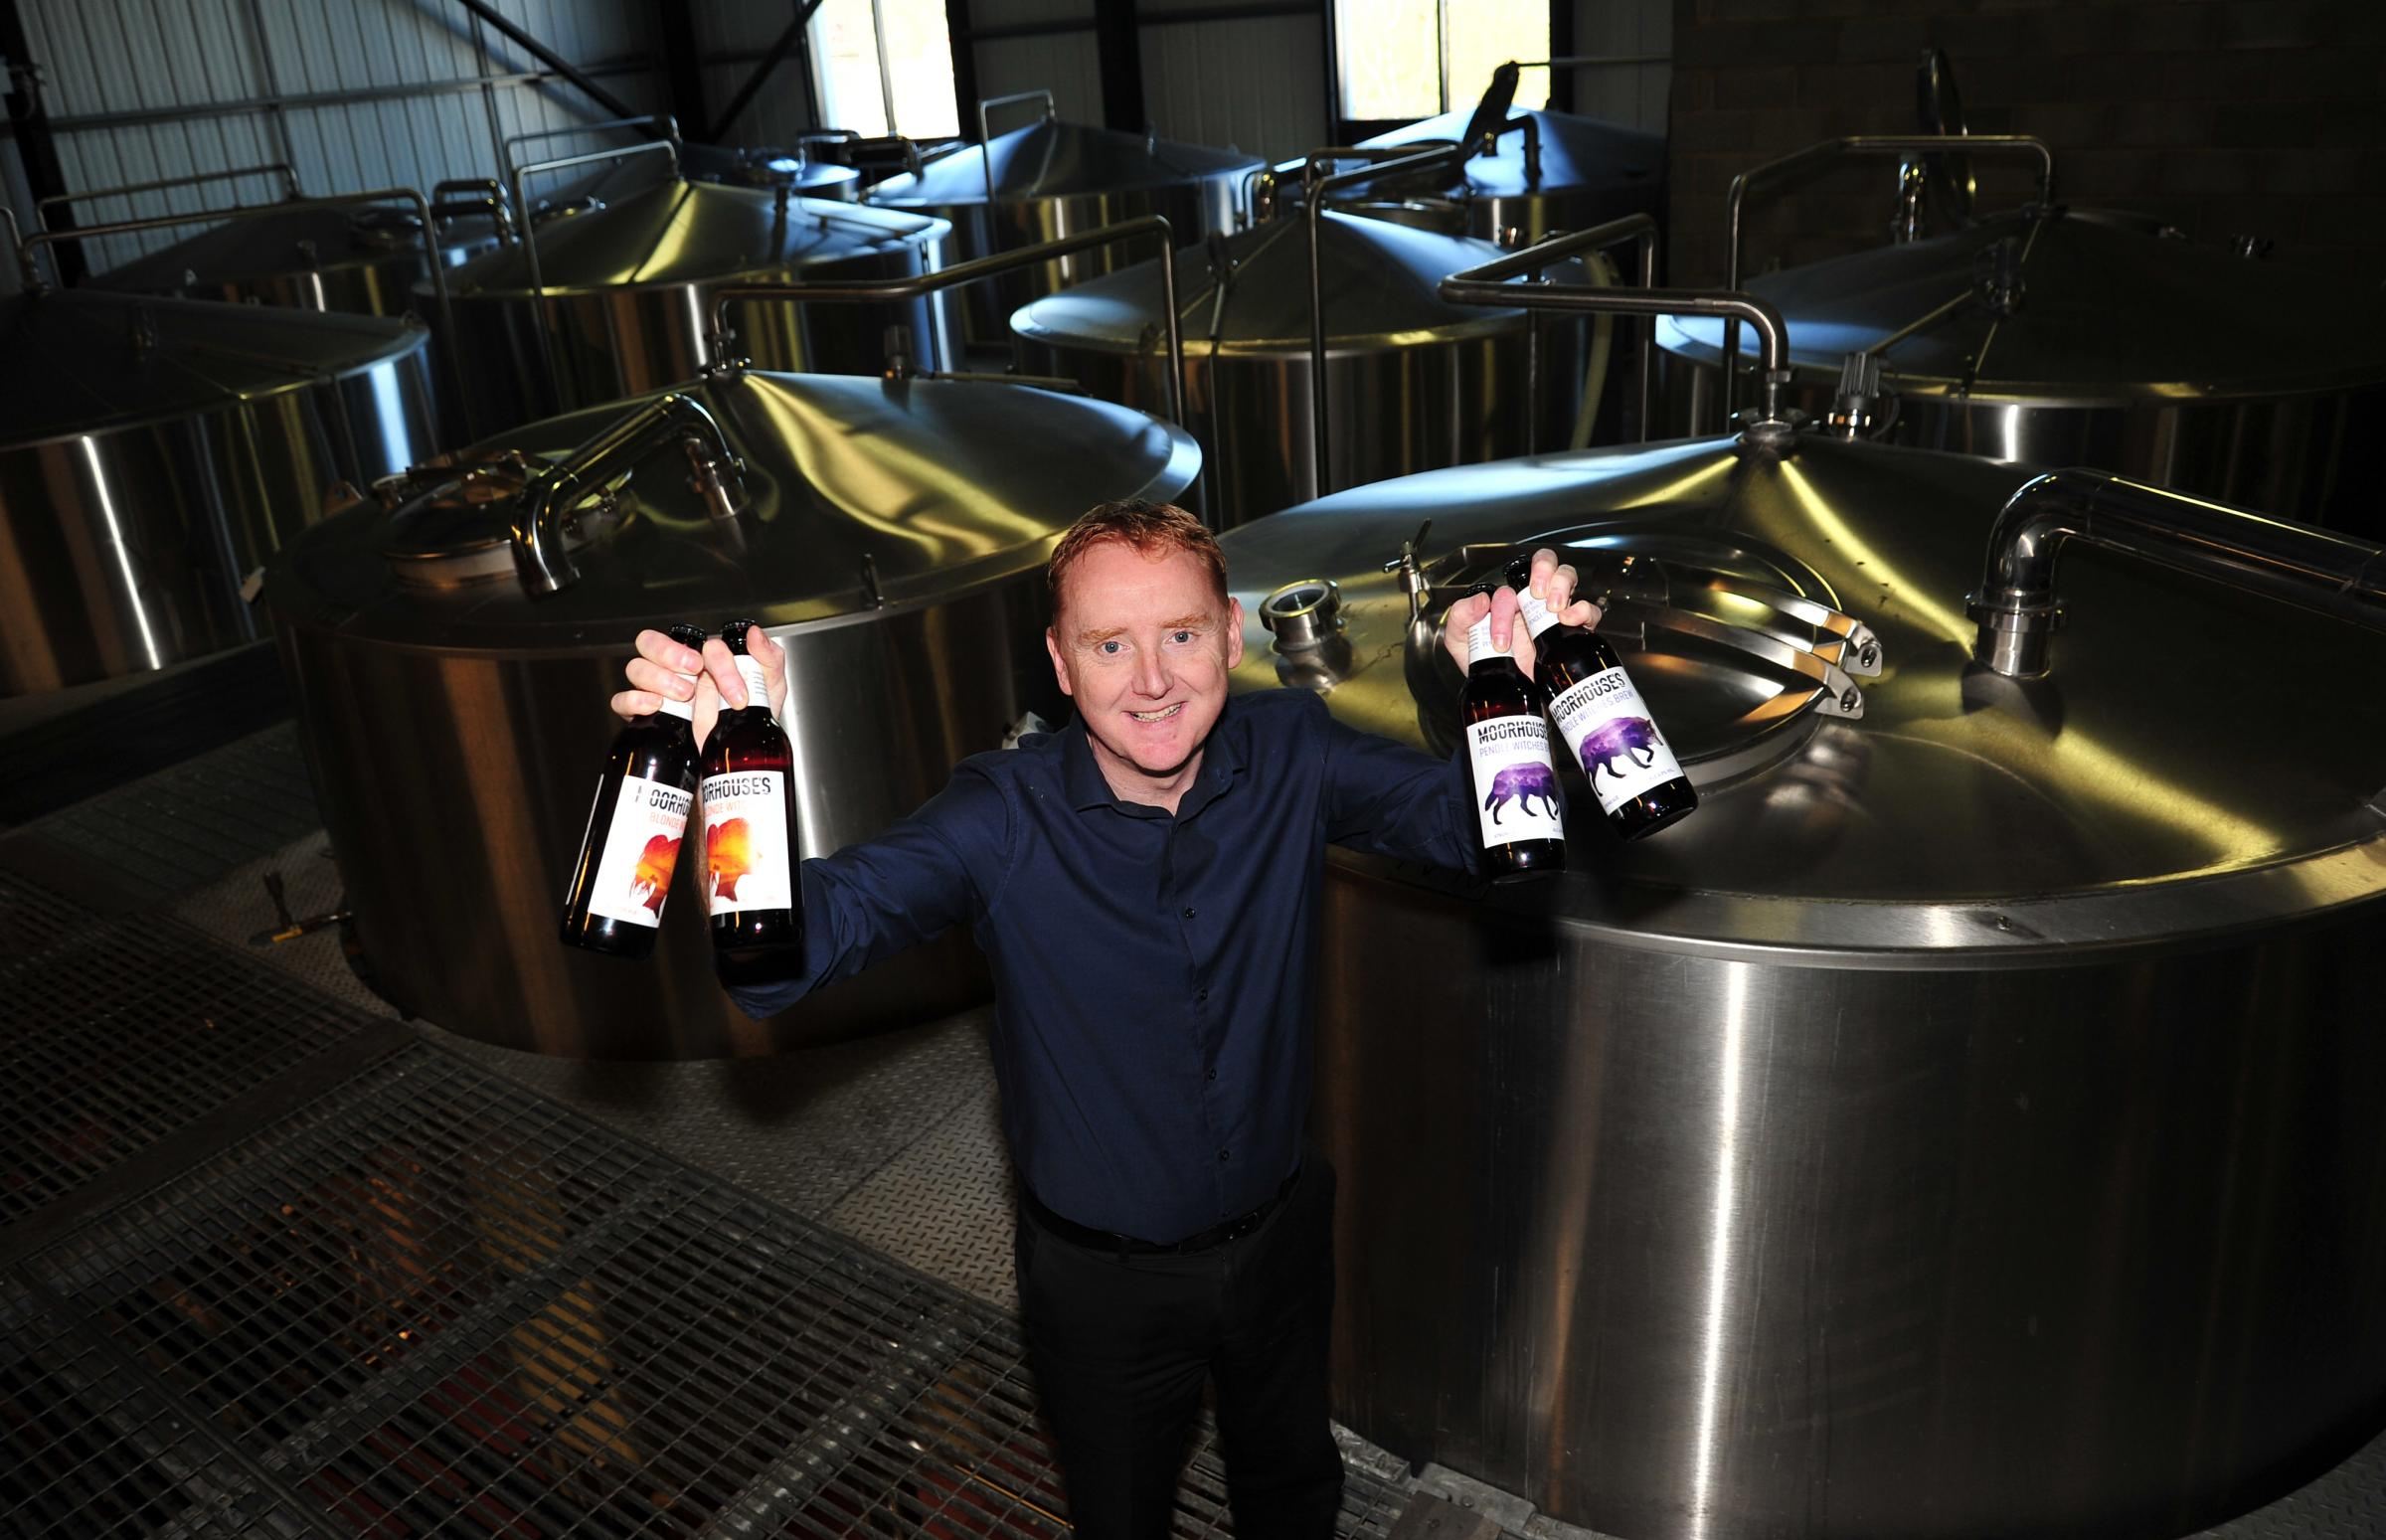 Managing Director of Moorhouse Brewery, Lee Williams with the new ales and branding at the brewery in Burnley